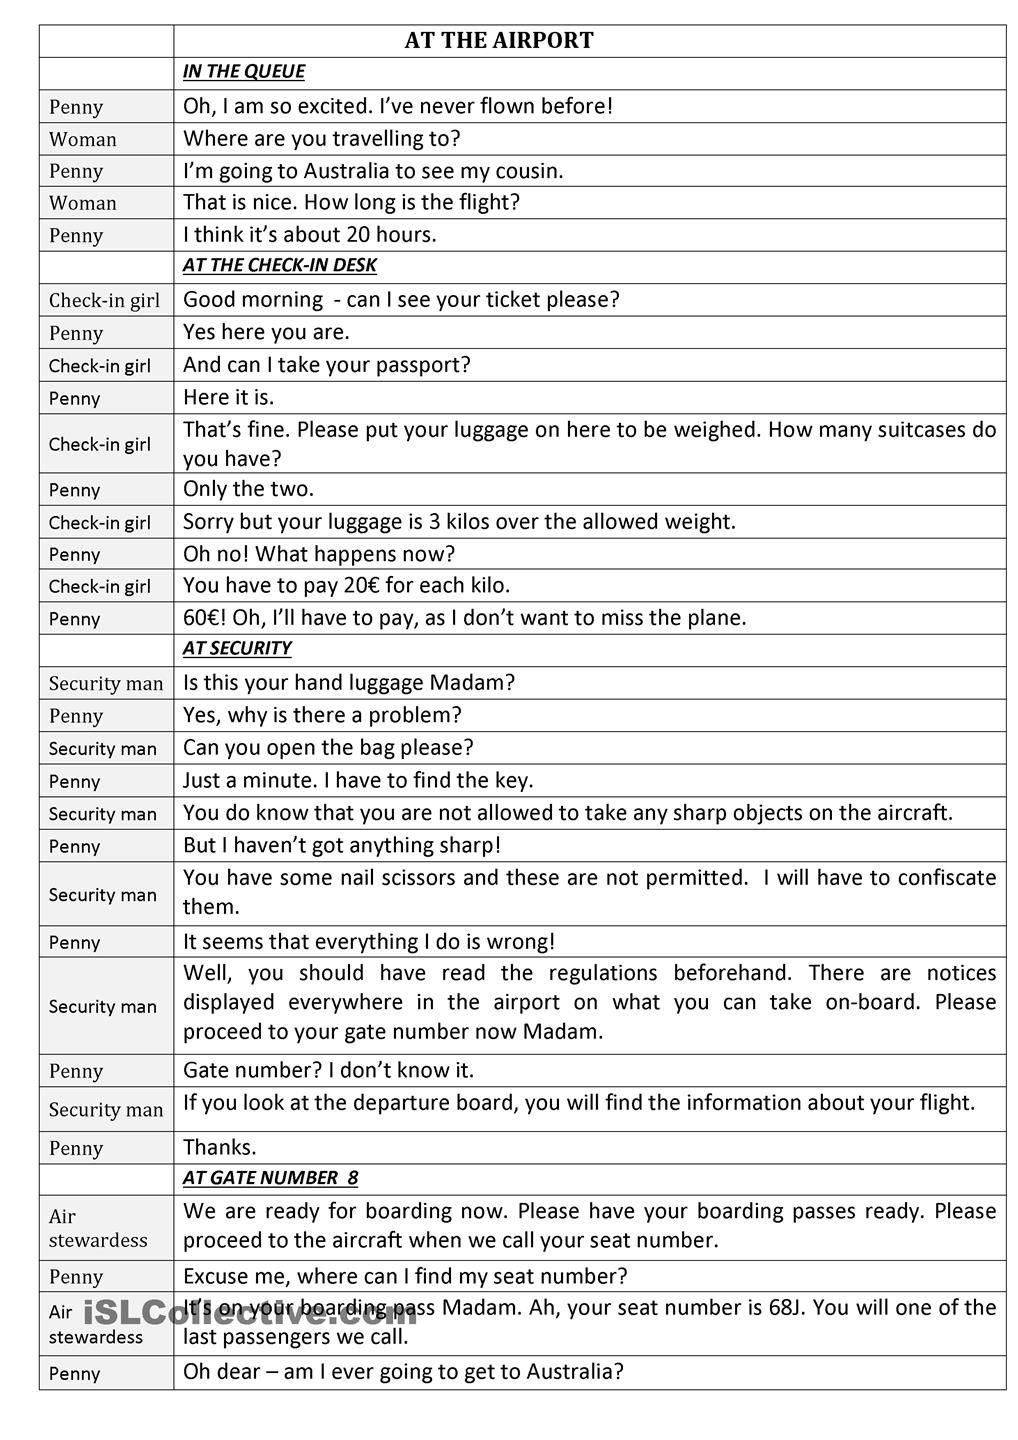 Uncategorized Dialogue Worksheets at the airport exercises english pinterest everyday conversation between passenger and staff then a worksheet to make dialogue